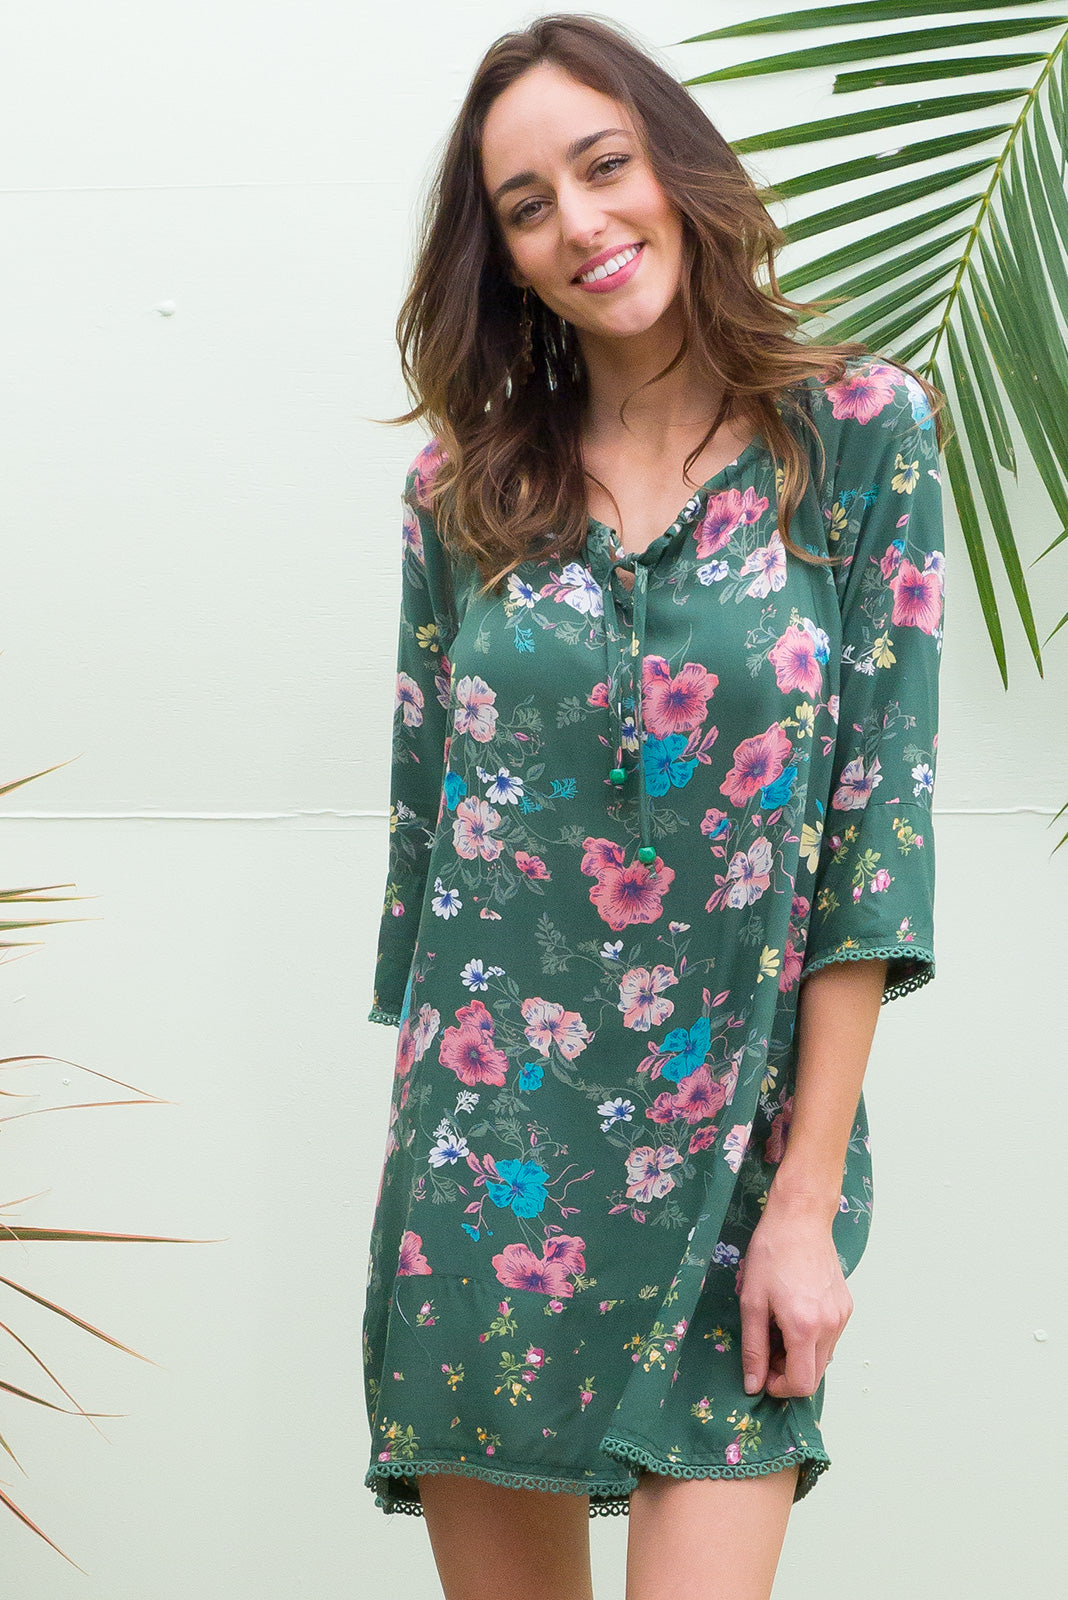 Angie Dee Tunic Dress with a elastic drawstring neckline and midi sleeve with cotton lace trim on the sleeve and hem in a green floral print on smooth soft rayon